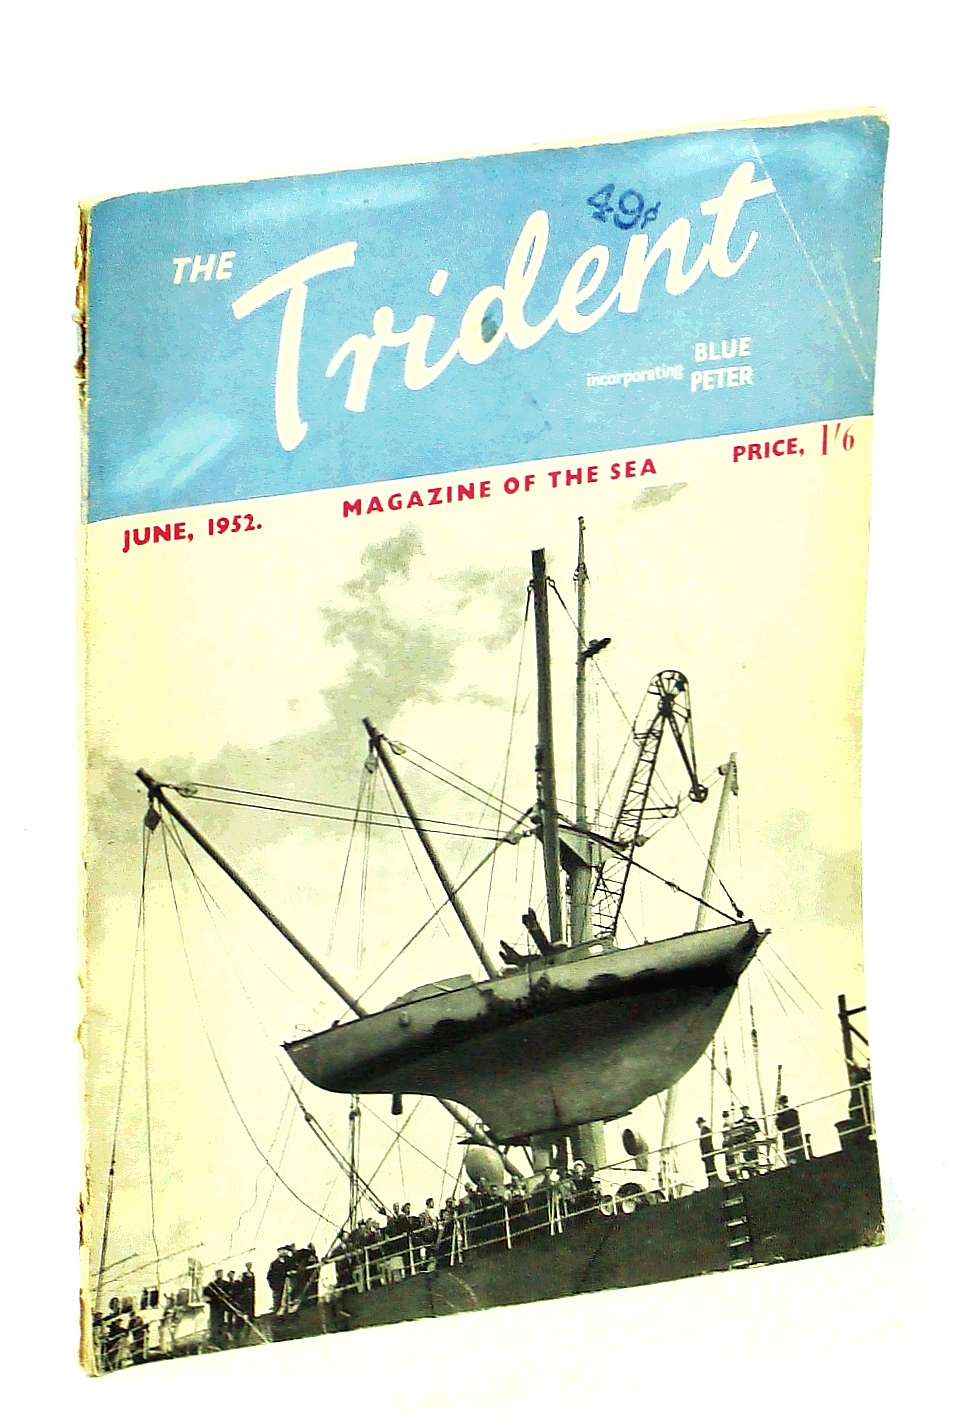 """Image for The Trident [Magazine] Incorporating Blue Peter - Magazine of the Sea, June 1952, Vol. 14, No. 158 - Cover photo of the Yacht """"Samuel Pepys"""" Being Hoisted Aboard the Royal Mail Ship """"Brittany"""""""